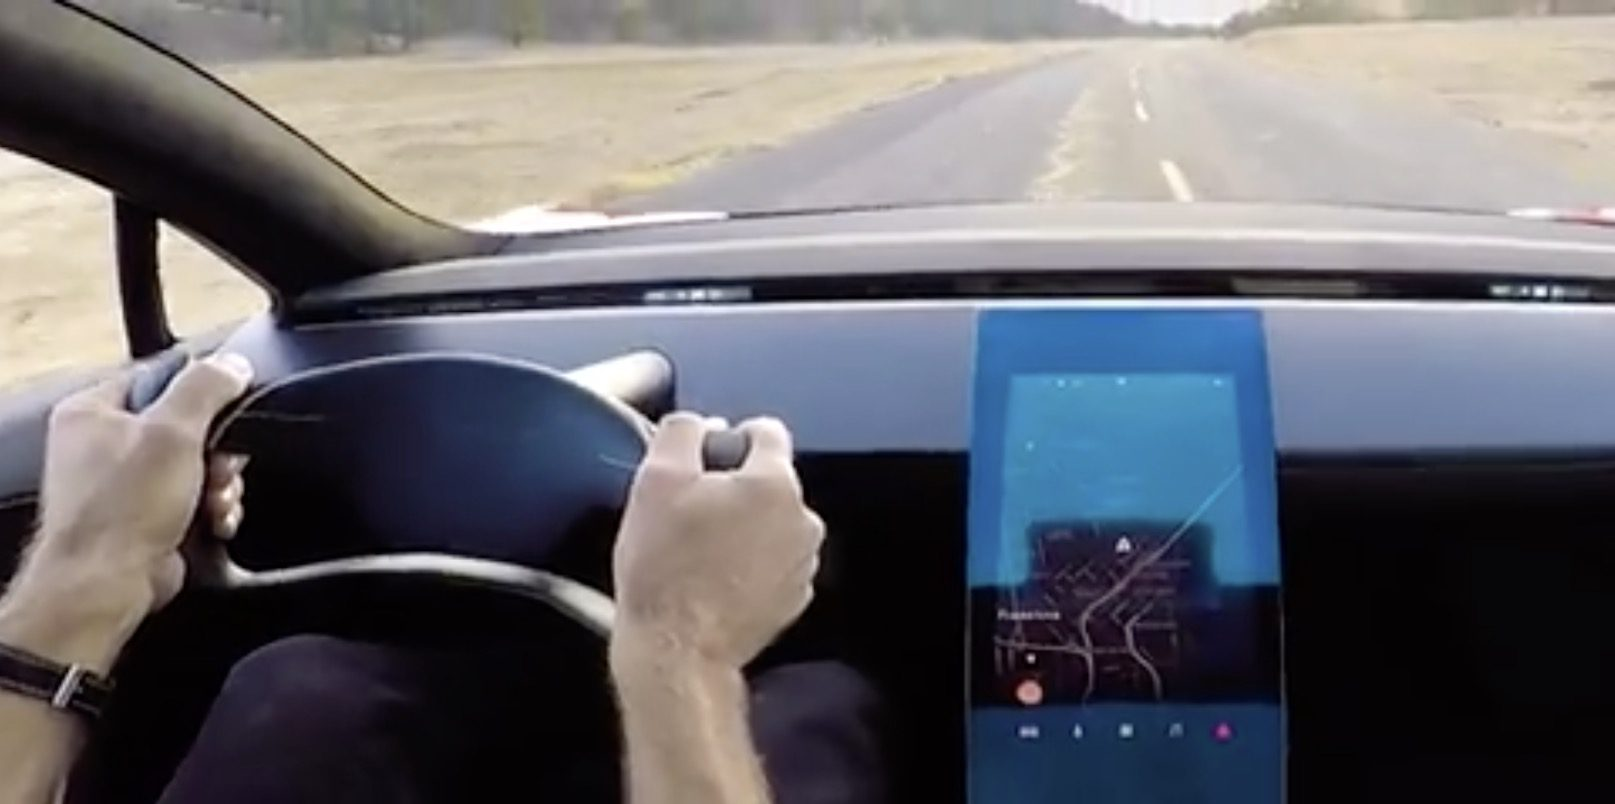 Tesla releases new video with mystery car, new next-gen Roadster footage in action, and more